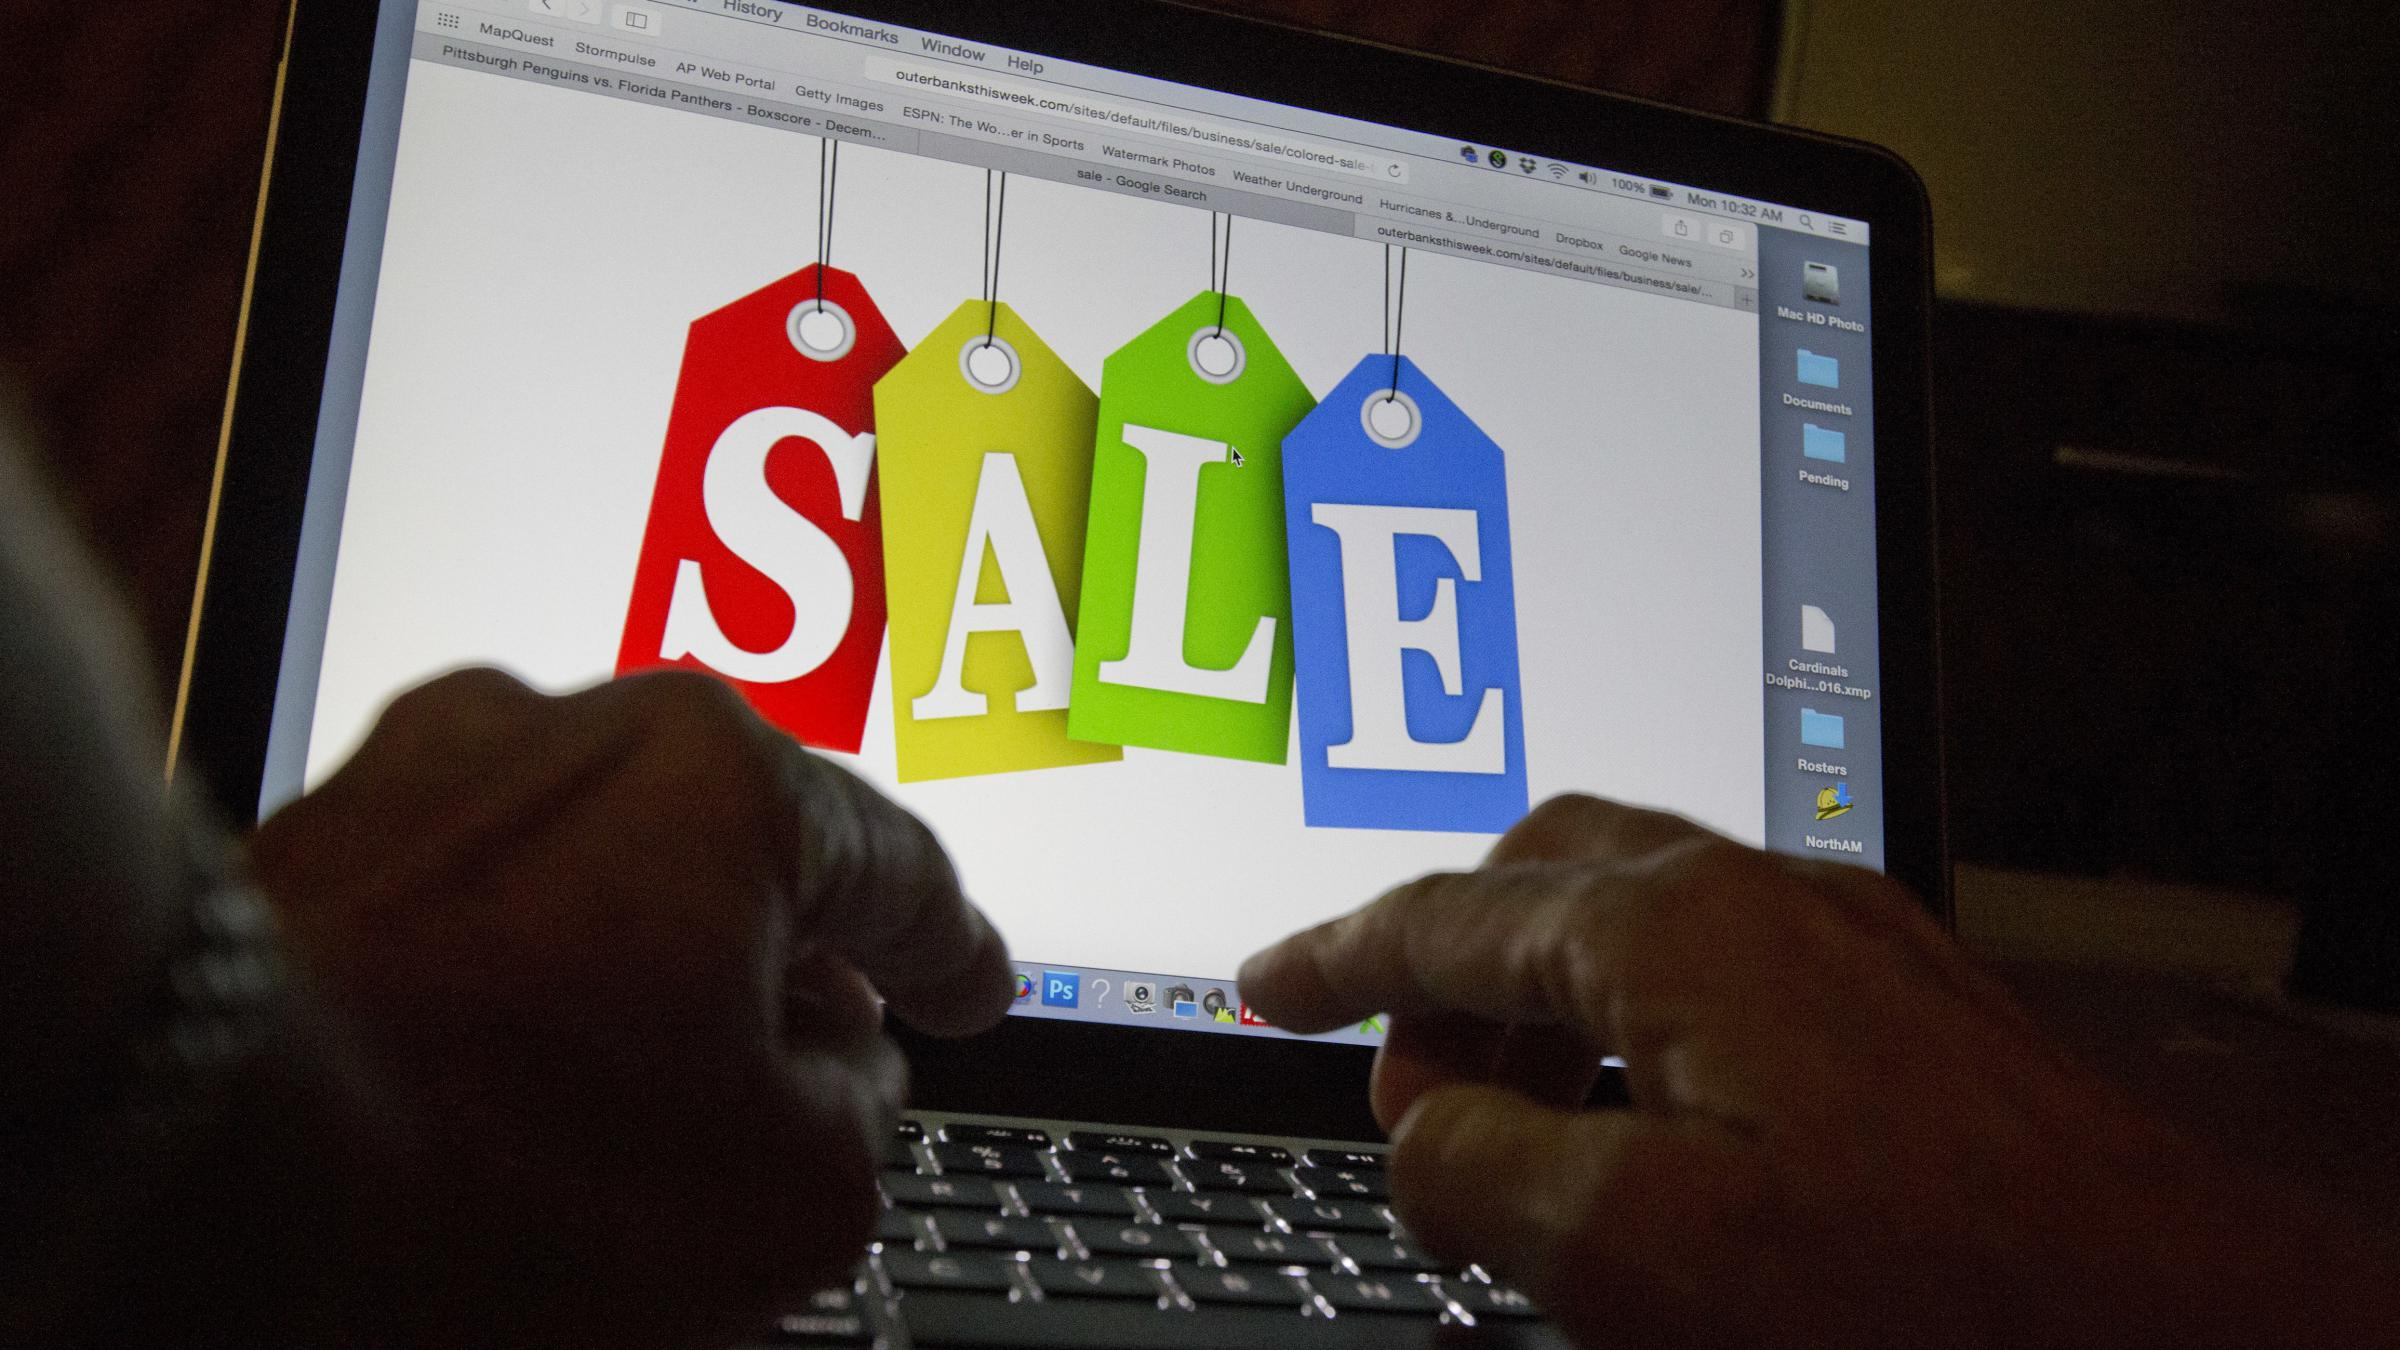 Will You Soon Have To Pay Sales Tax On Every Online Purchase